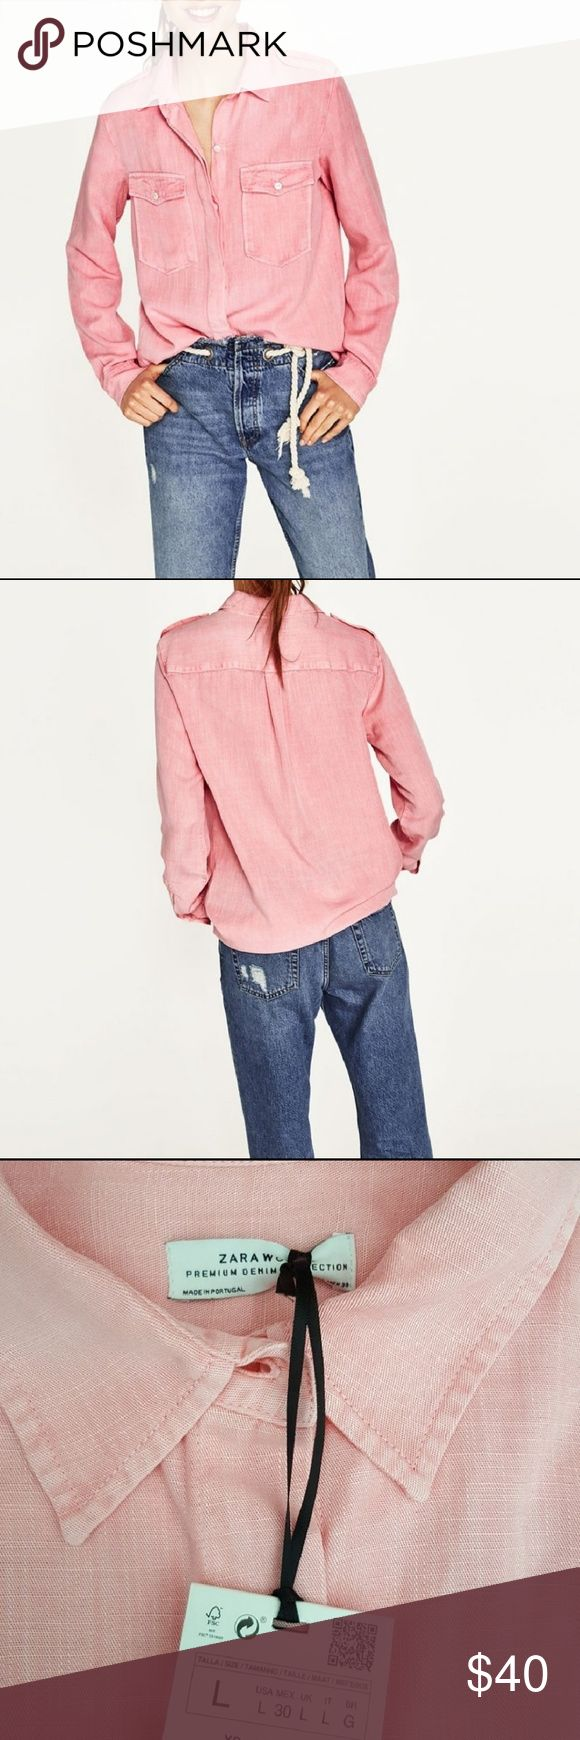 Zara military style shirt Long sleeve shirt with plackets on shoulders and frayed hem. Large bust 20 inches Length 28.5 inches Medium bust 18.5 length 28 inches Zara Tops Button Down Shirts